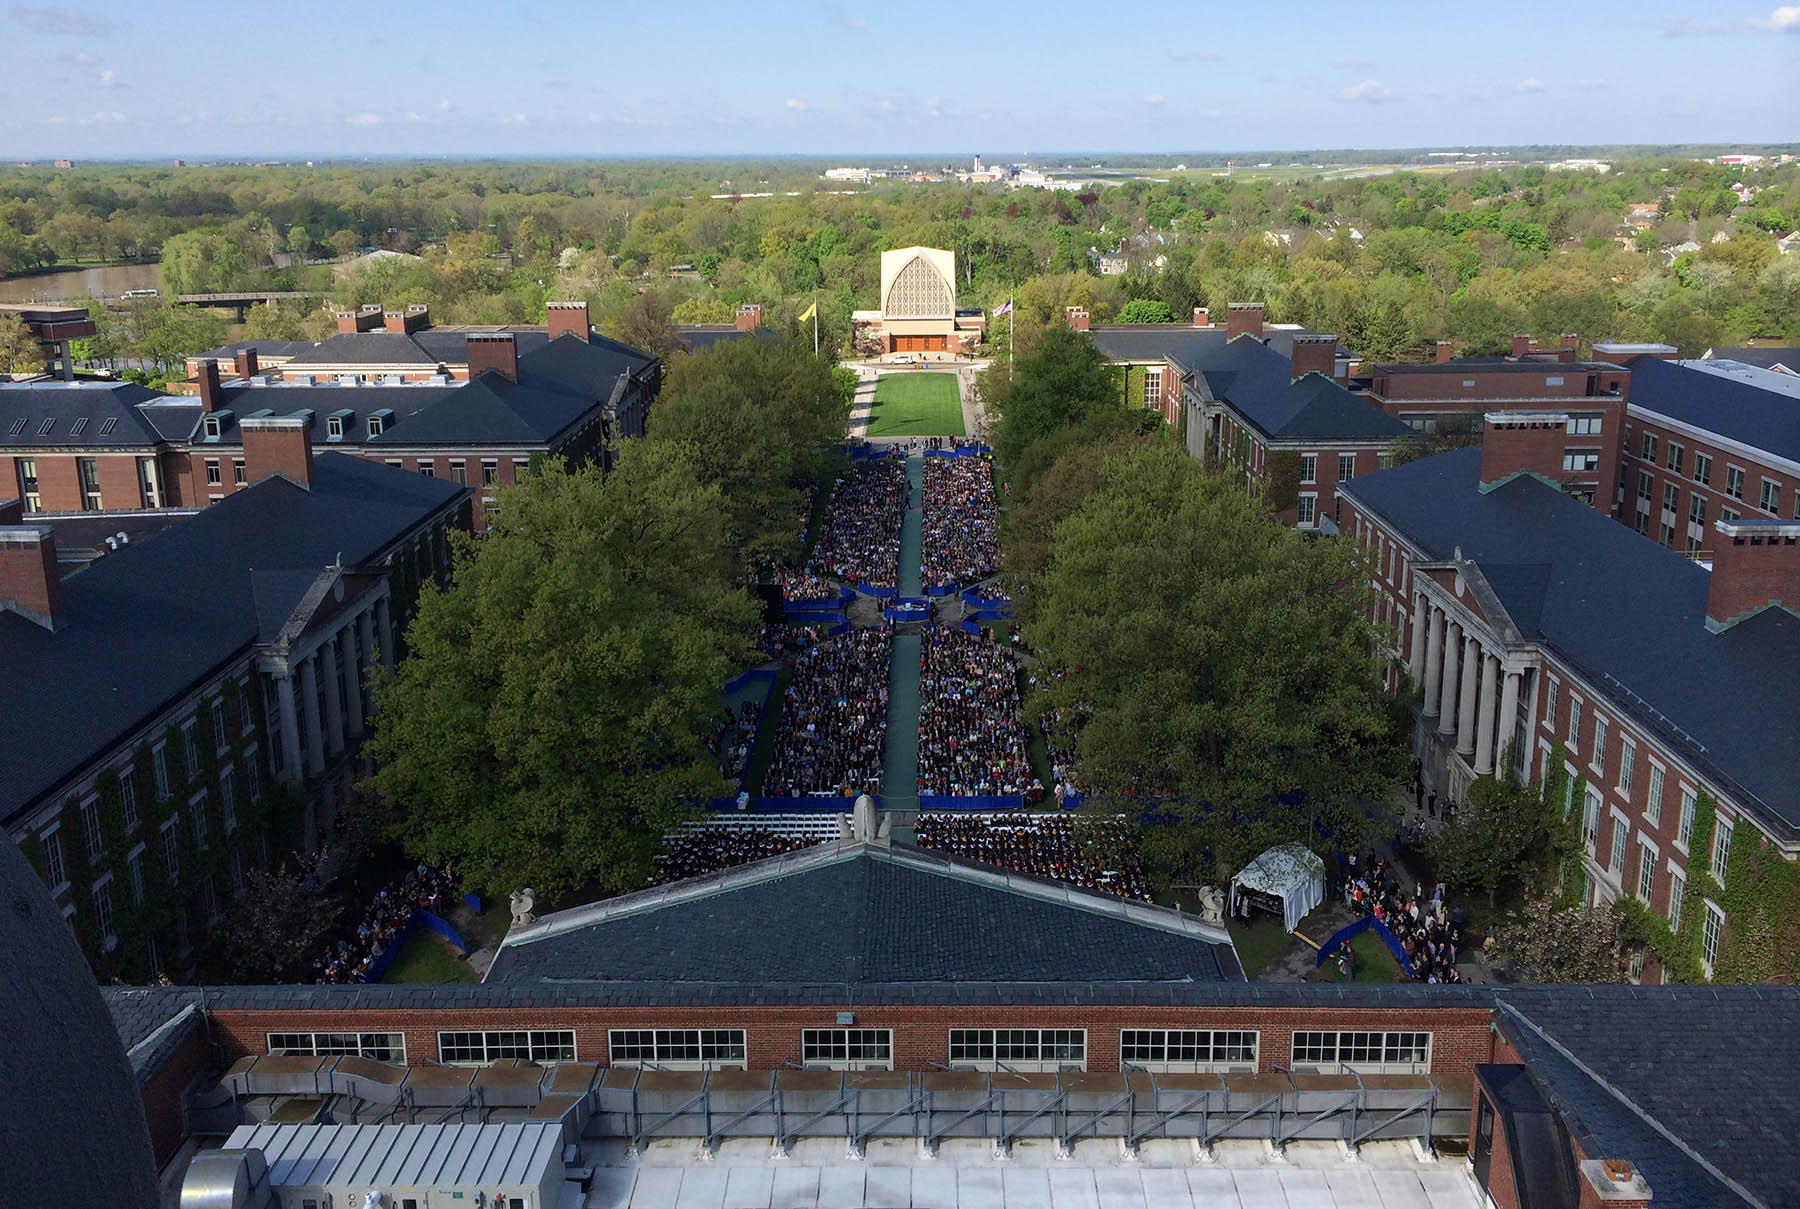 view of grads on the quad, from high up Rush Rhees tower